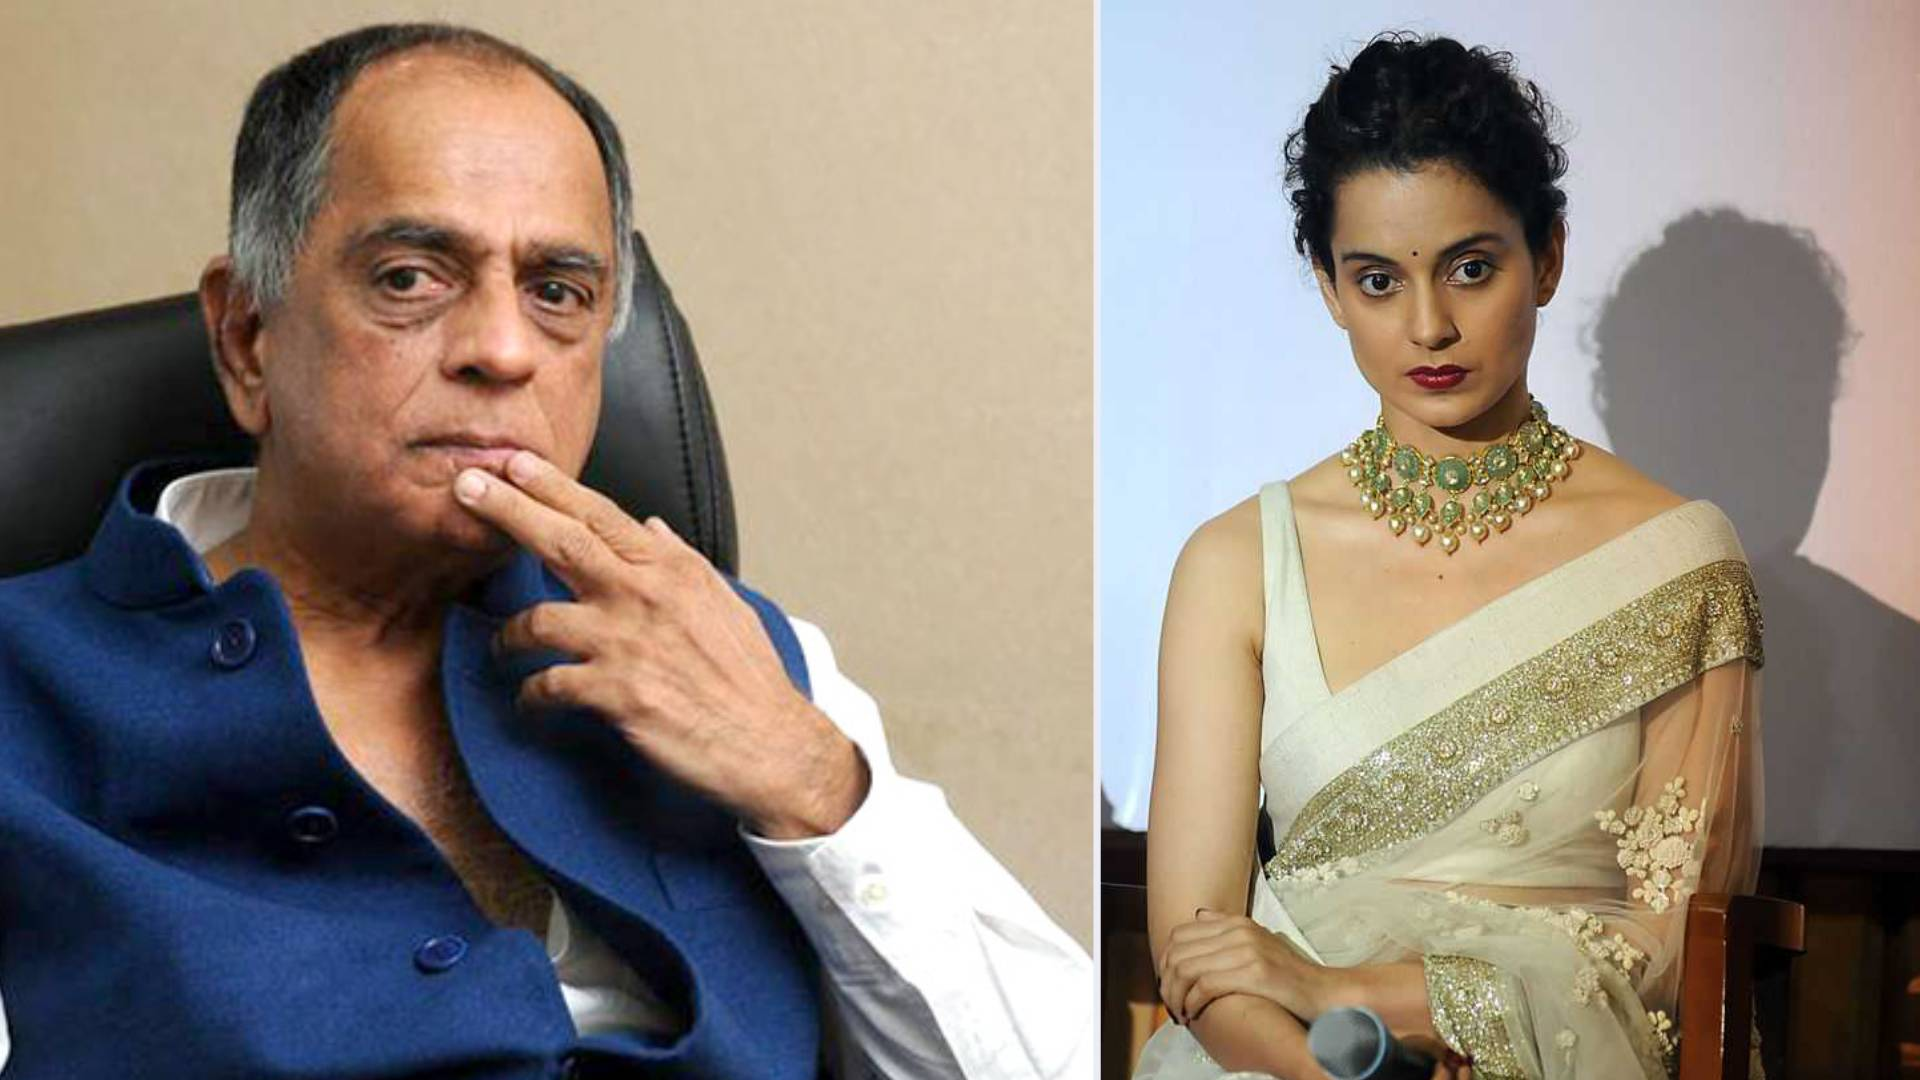 Controversial Diva Of B Town Kangana Ranauts Allegations Now Finally